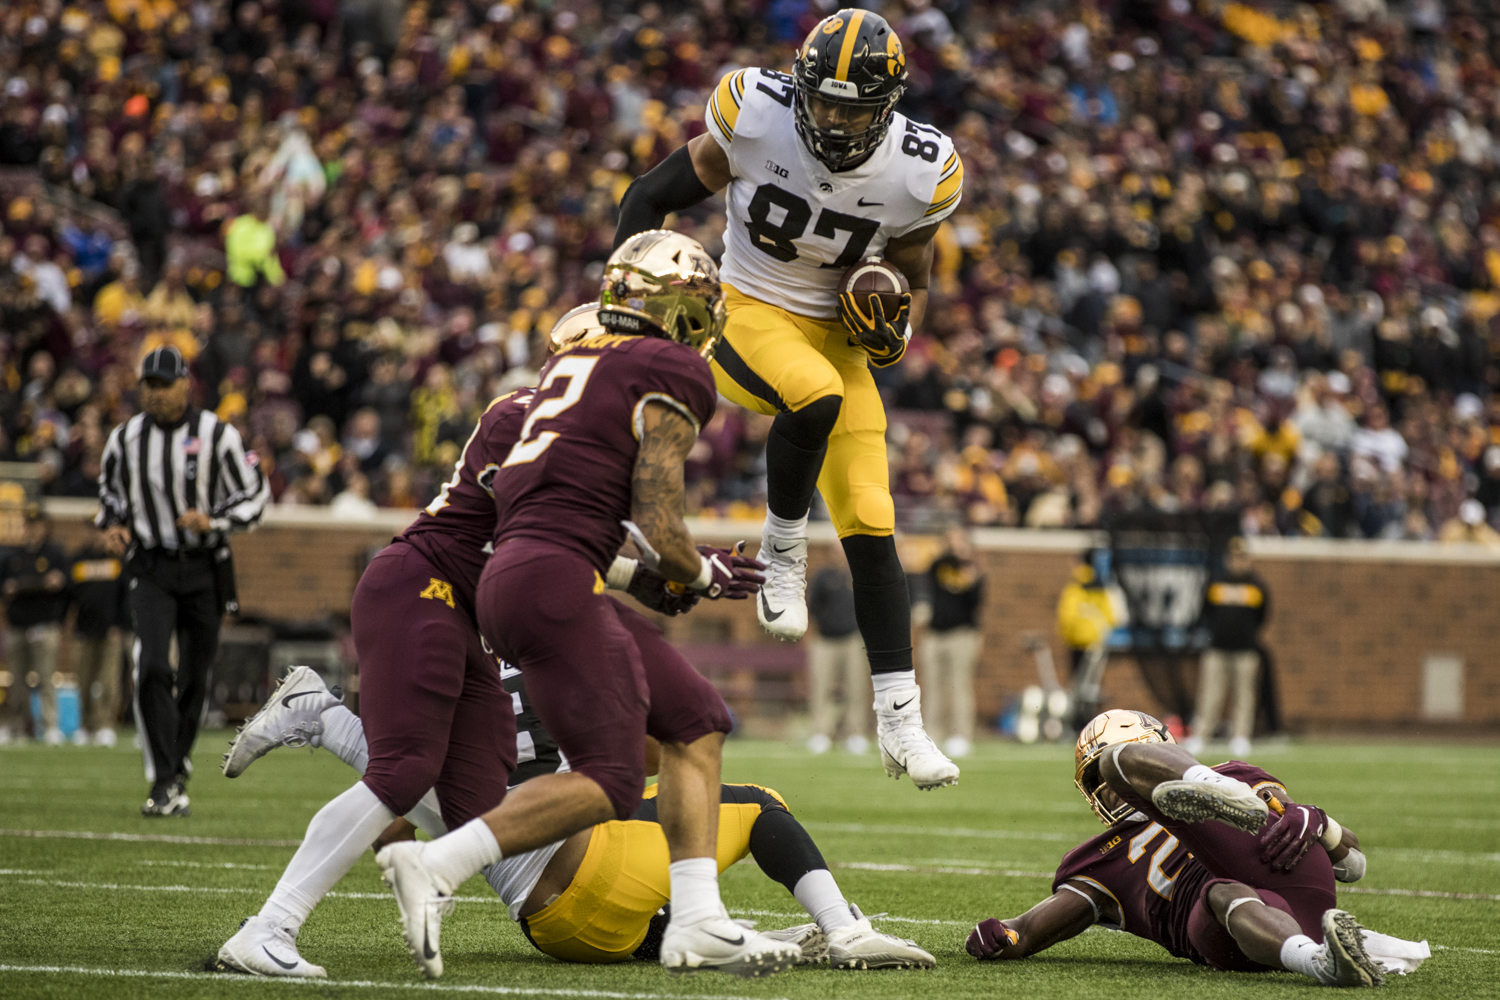 Iowa tight end Noah Fant hurdles a defender during Iowa's game against Minnesota at TCF Bank Stadium on Saturday, Oct. 6, 2018. The Hawkeyes defeated the Golden Gophers 48-31.